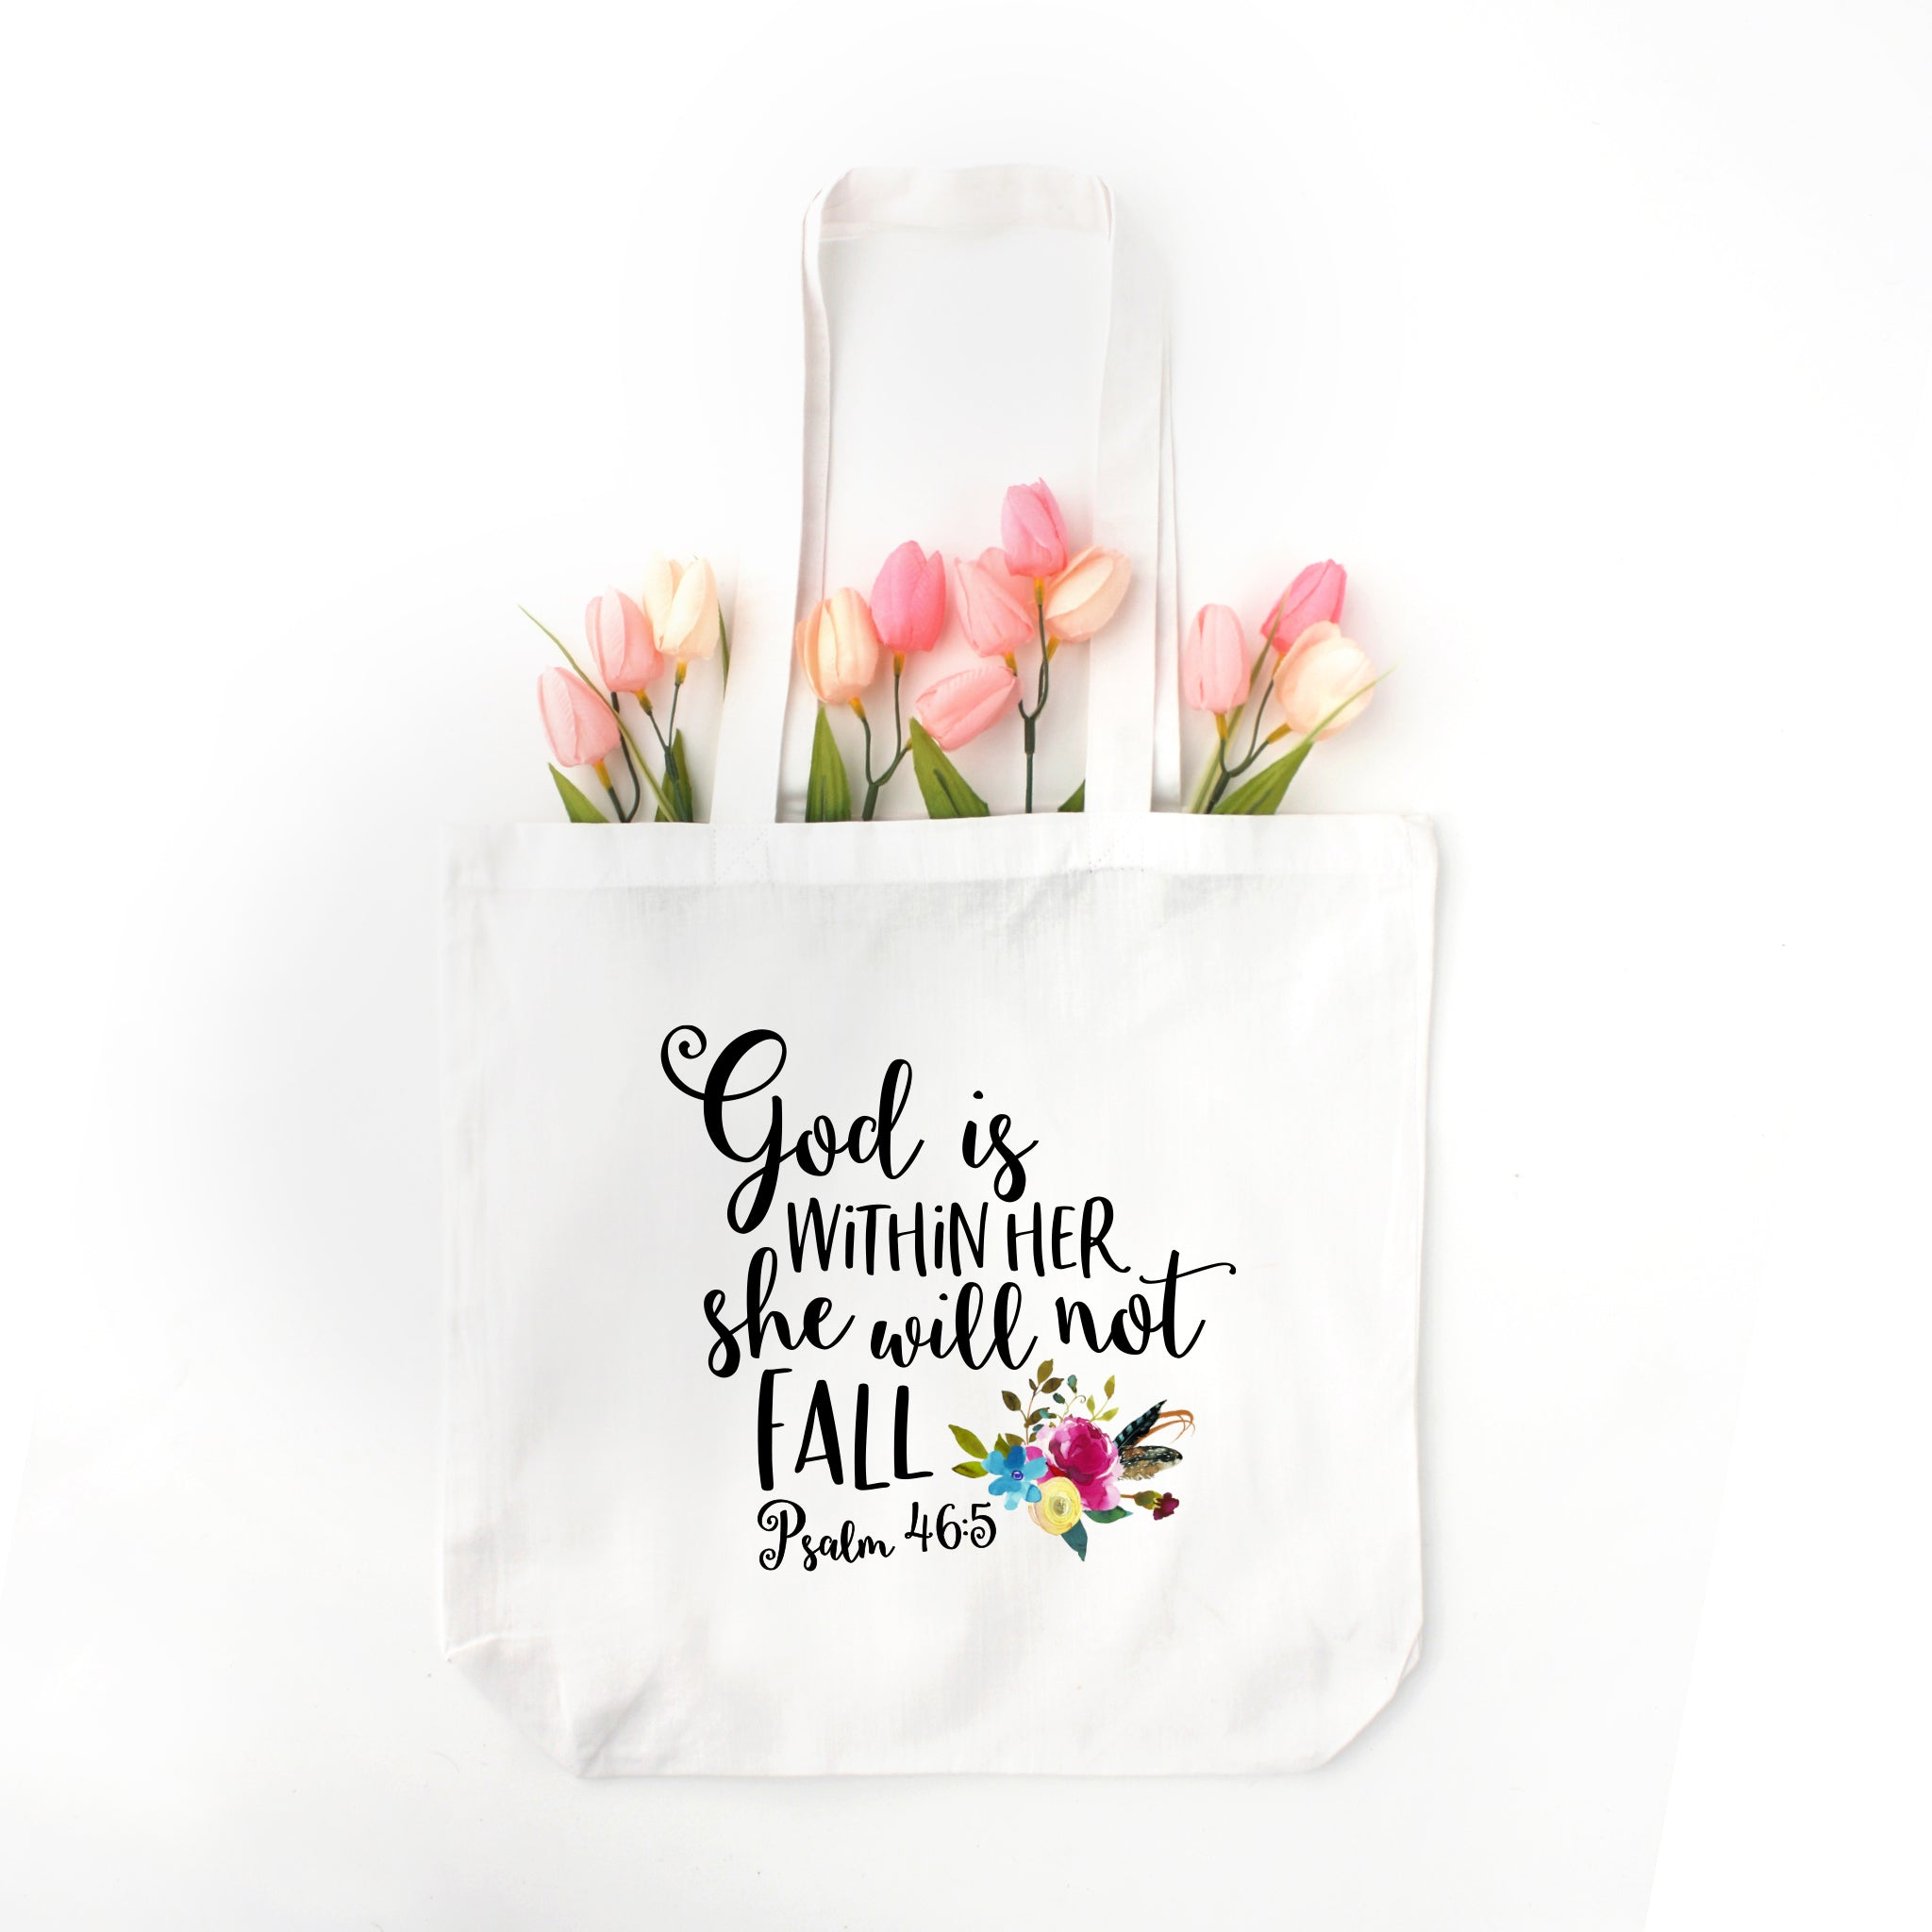 God Is Within Her She Will Not Fall Tote Bag - Bella Faith - Christian Shirts for Women - Women's Faith Based Apparel - Christian Clothing for Women - Christian Jewelry and Gifts for Women - Trendy Christian Tees